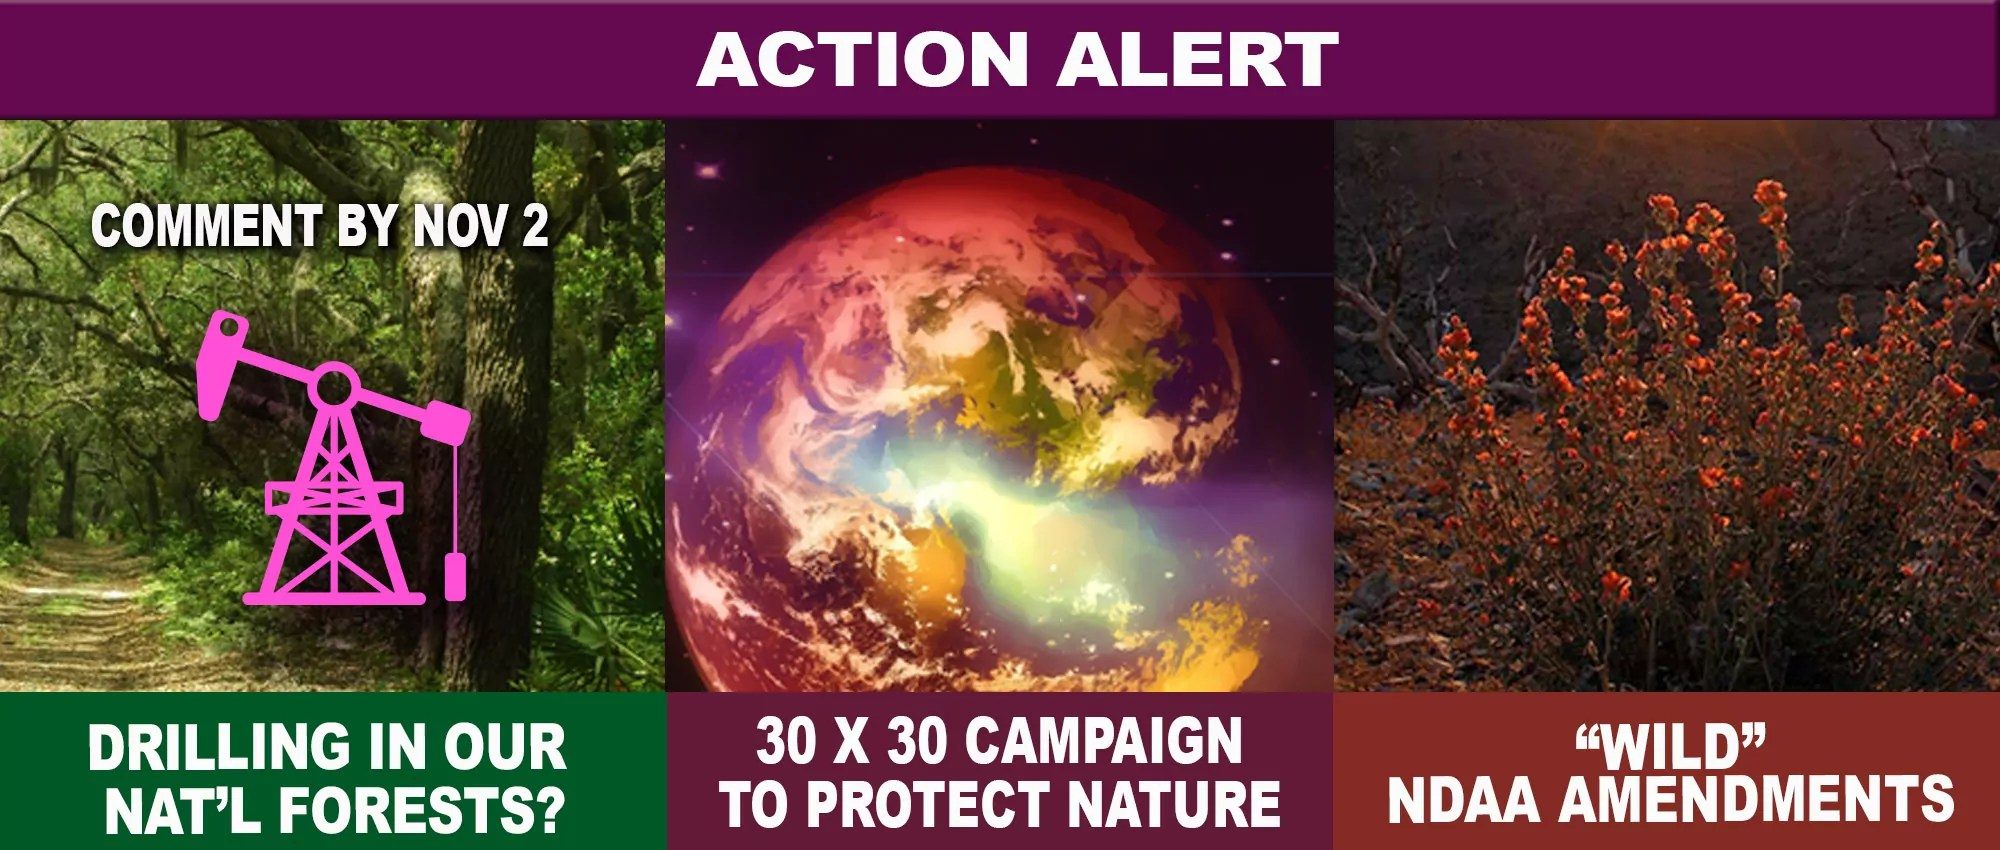 Sept20-actionalert